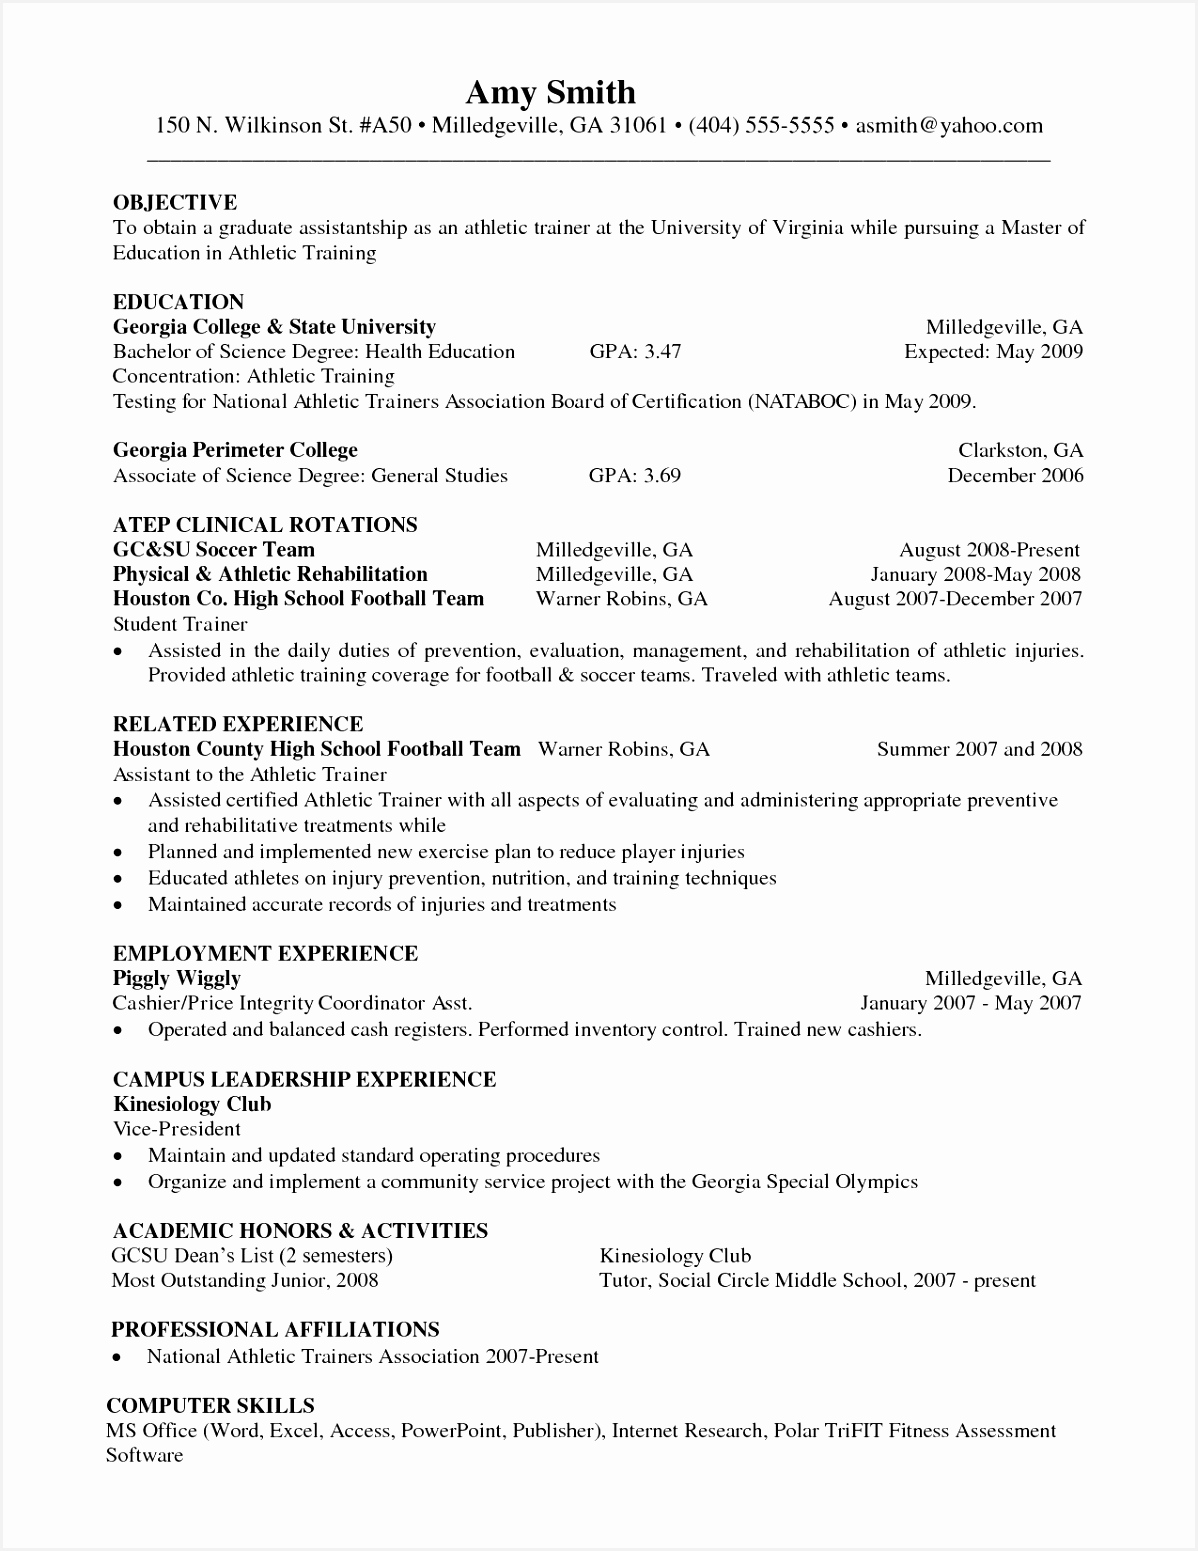 Resumes format for Freshers 3hian Lovely Resume format for Internship Engineering Elegant Luxury Grapher Of Resumes format for Freshers Ftkhi Fresh Resume formats for Fresher Awesome Word Resume Templates Free Free